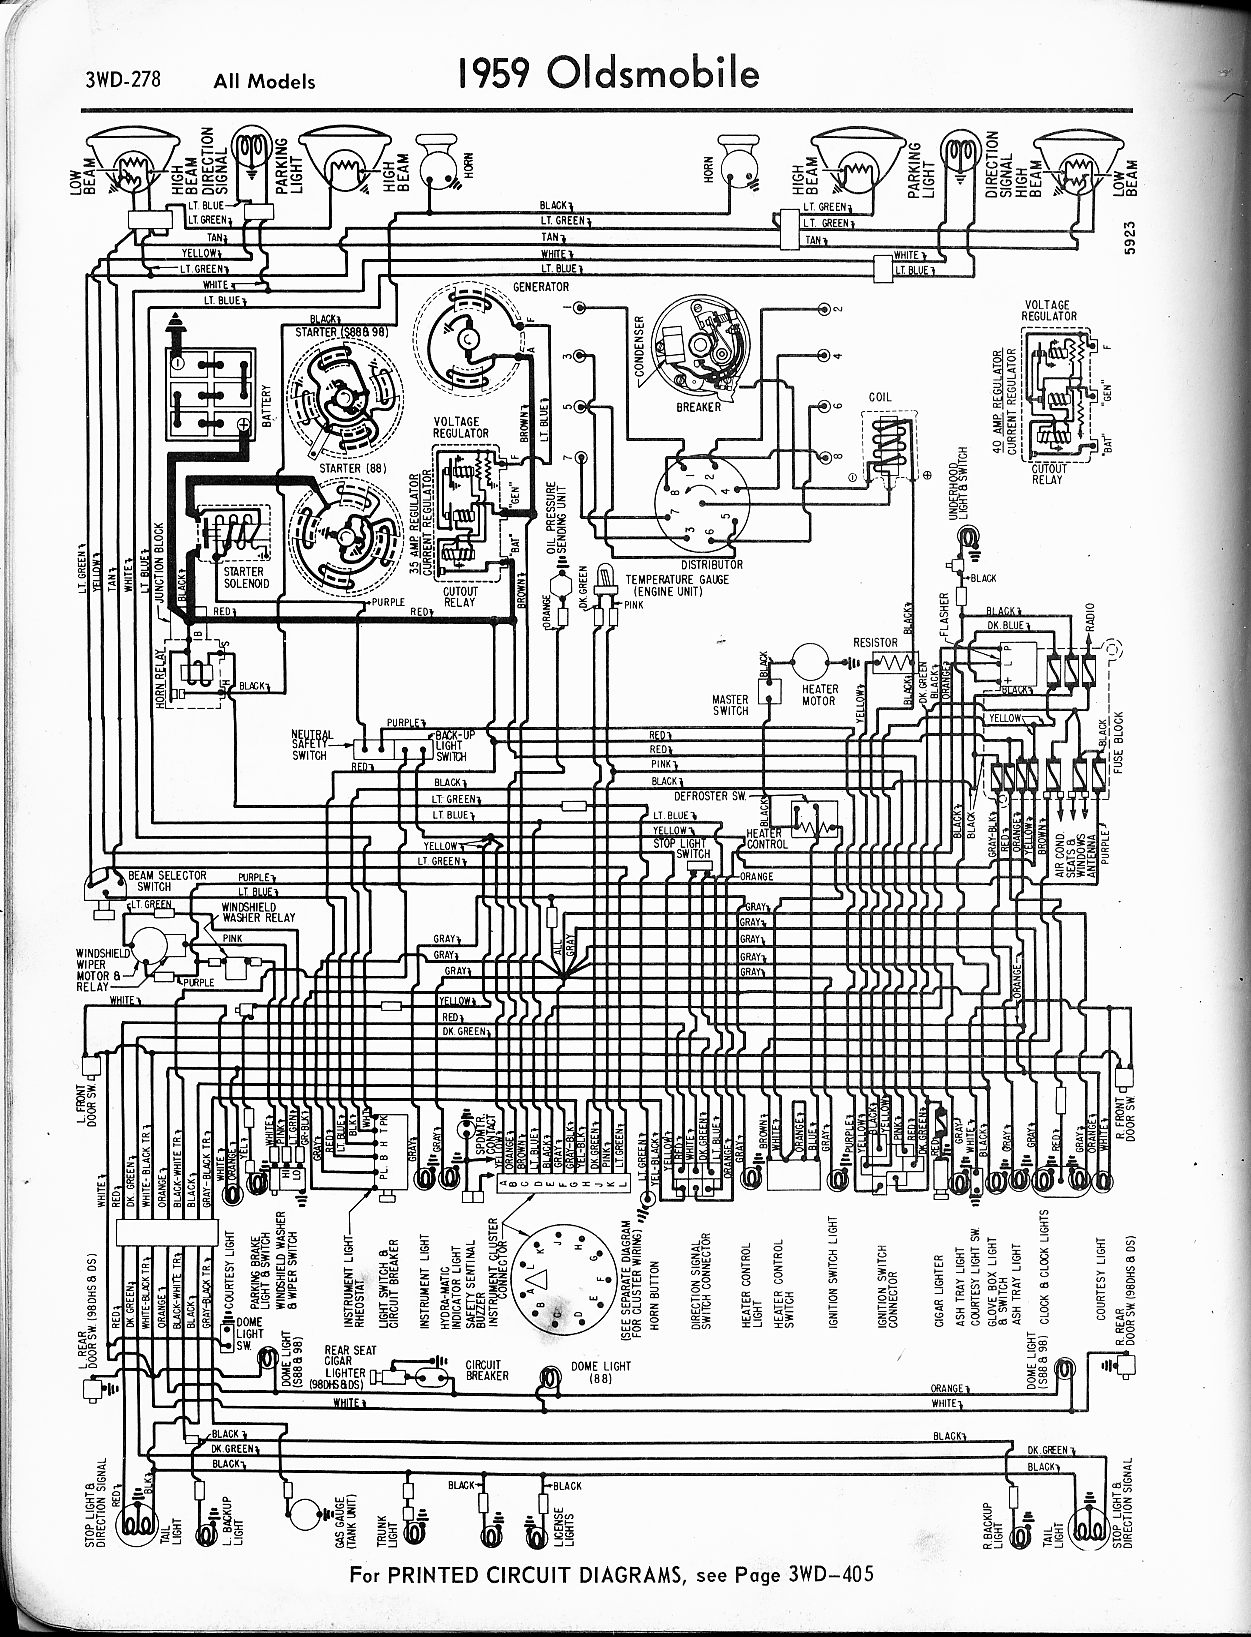 oldsmobile wiring diagrams - the old car manual project 82 corvette tail light wiring diagram